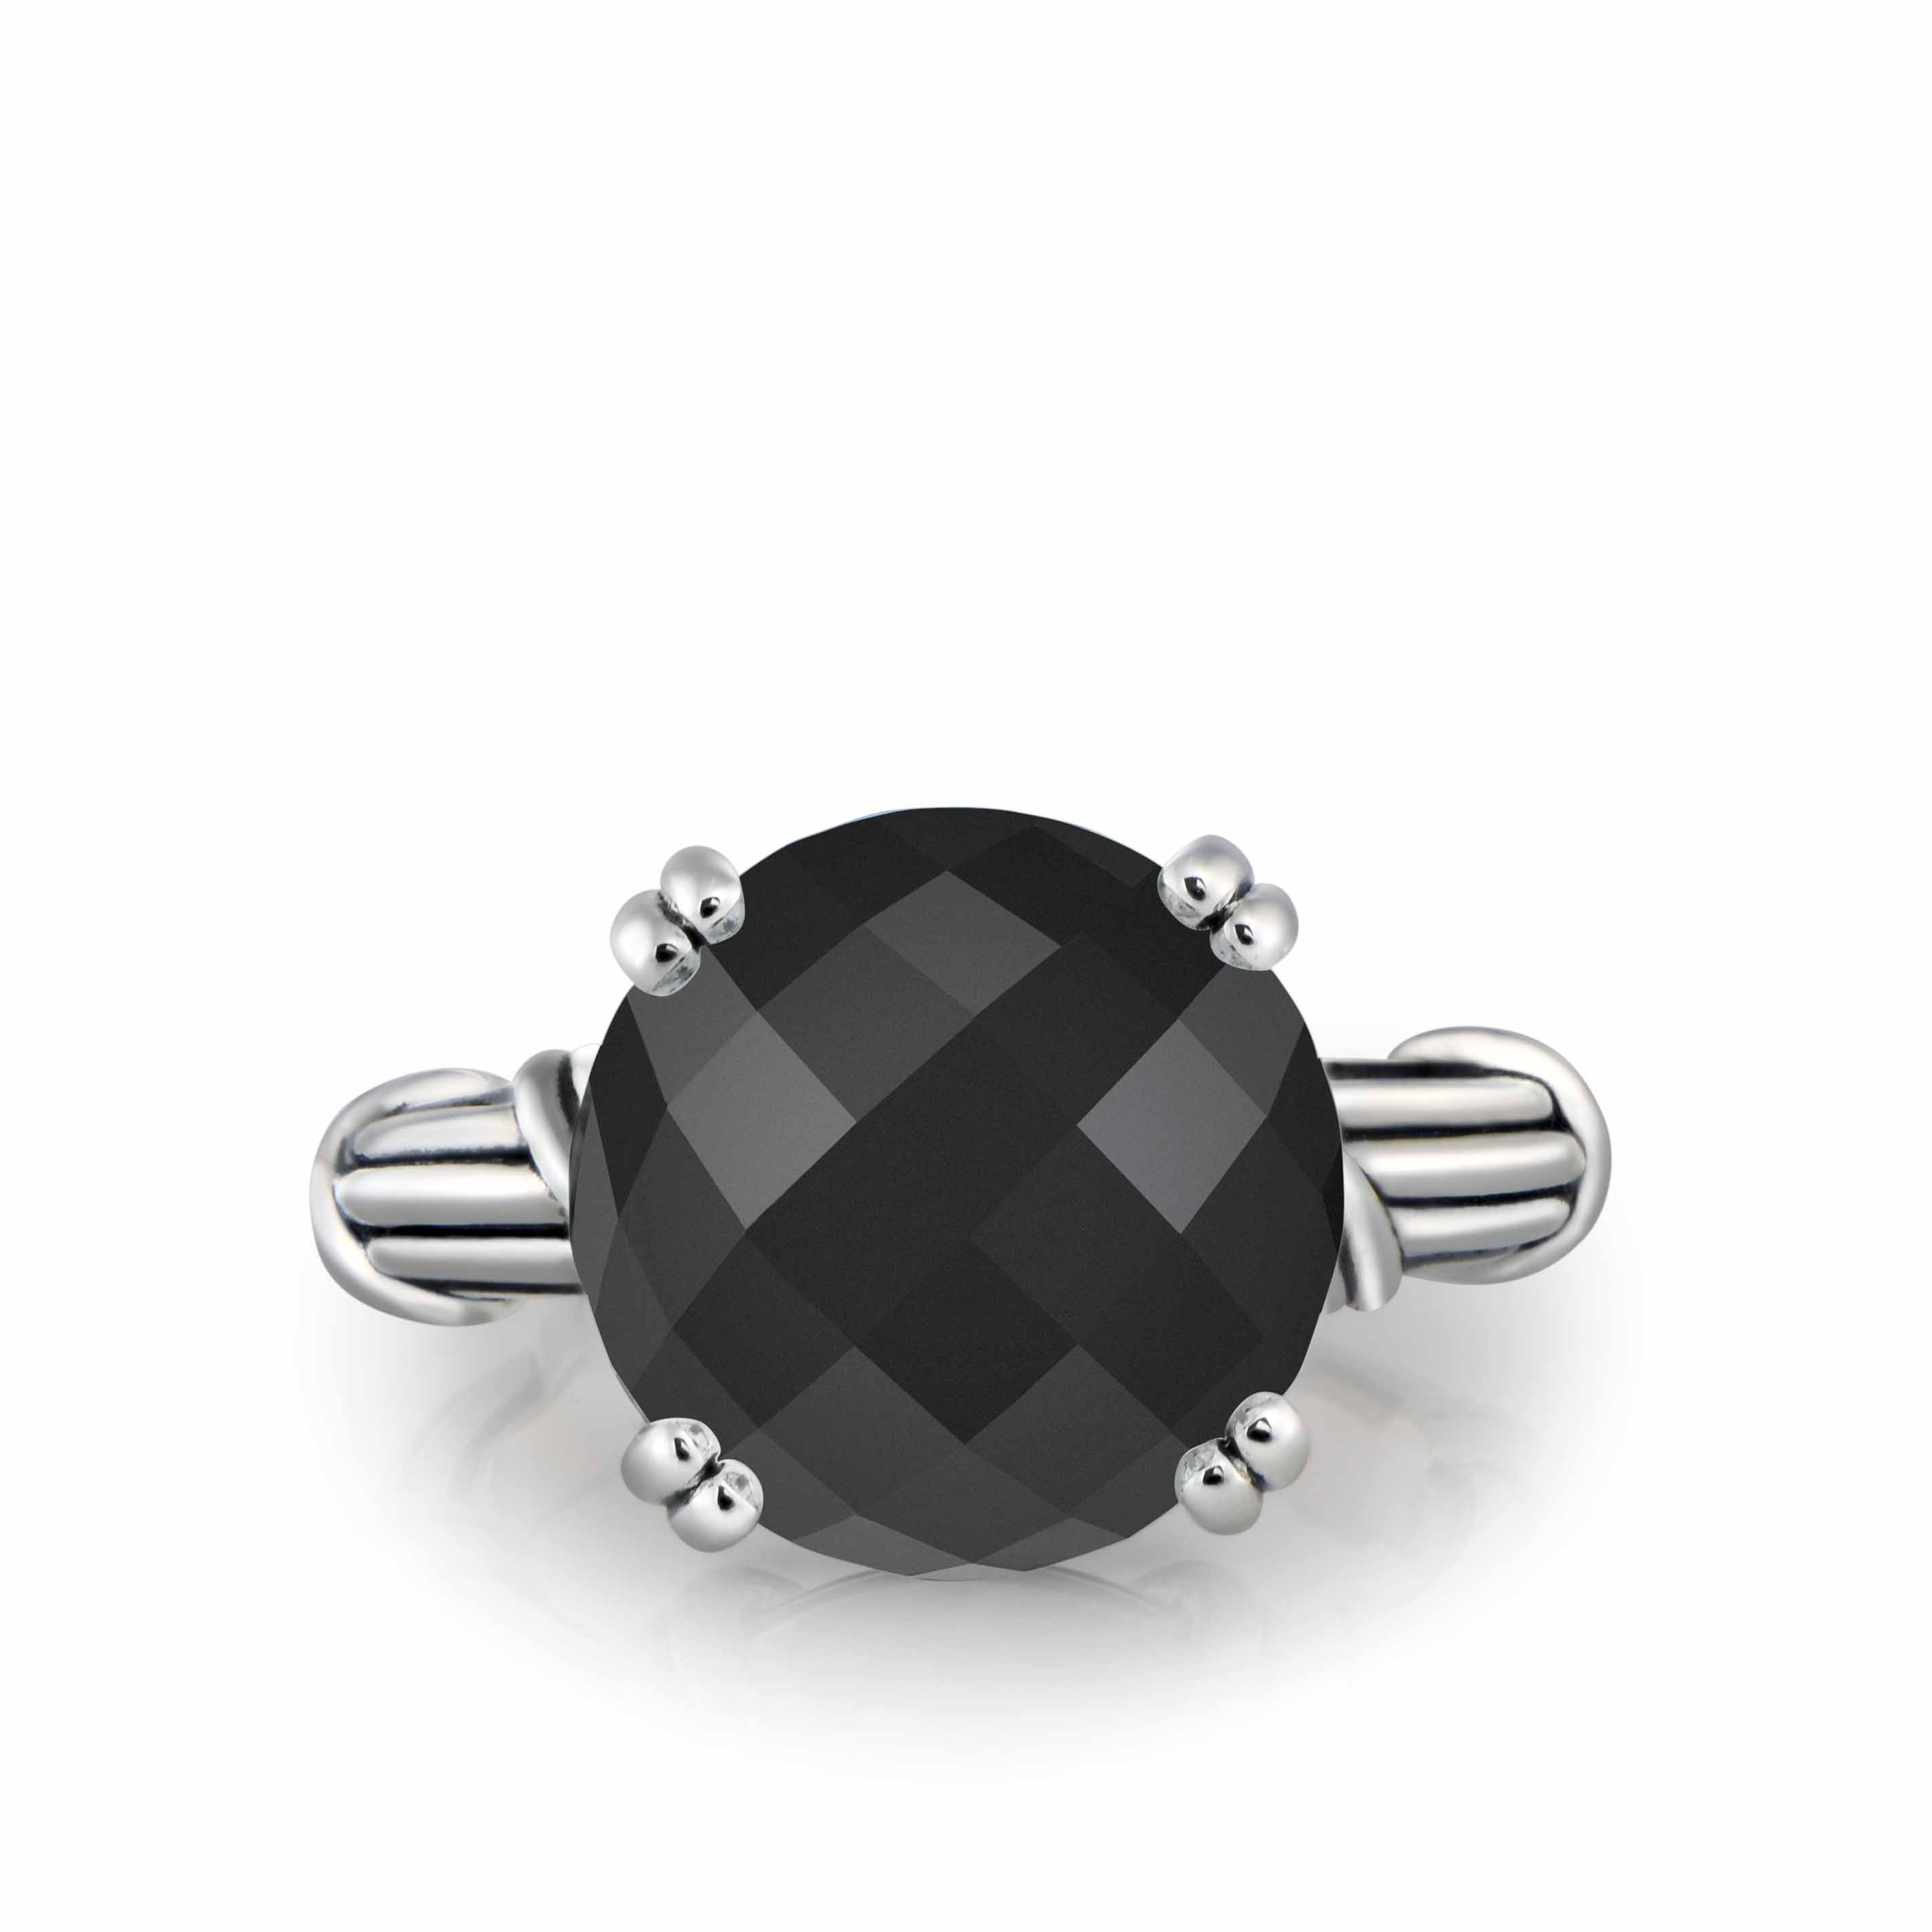 Fantasies Black Onyx Cocktail Ring in sterling silver